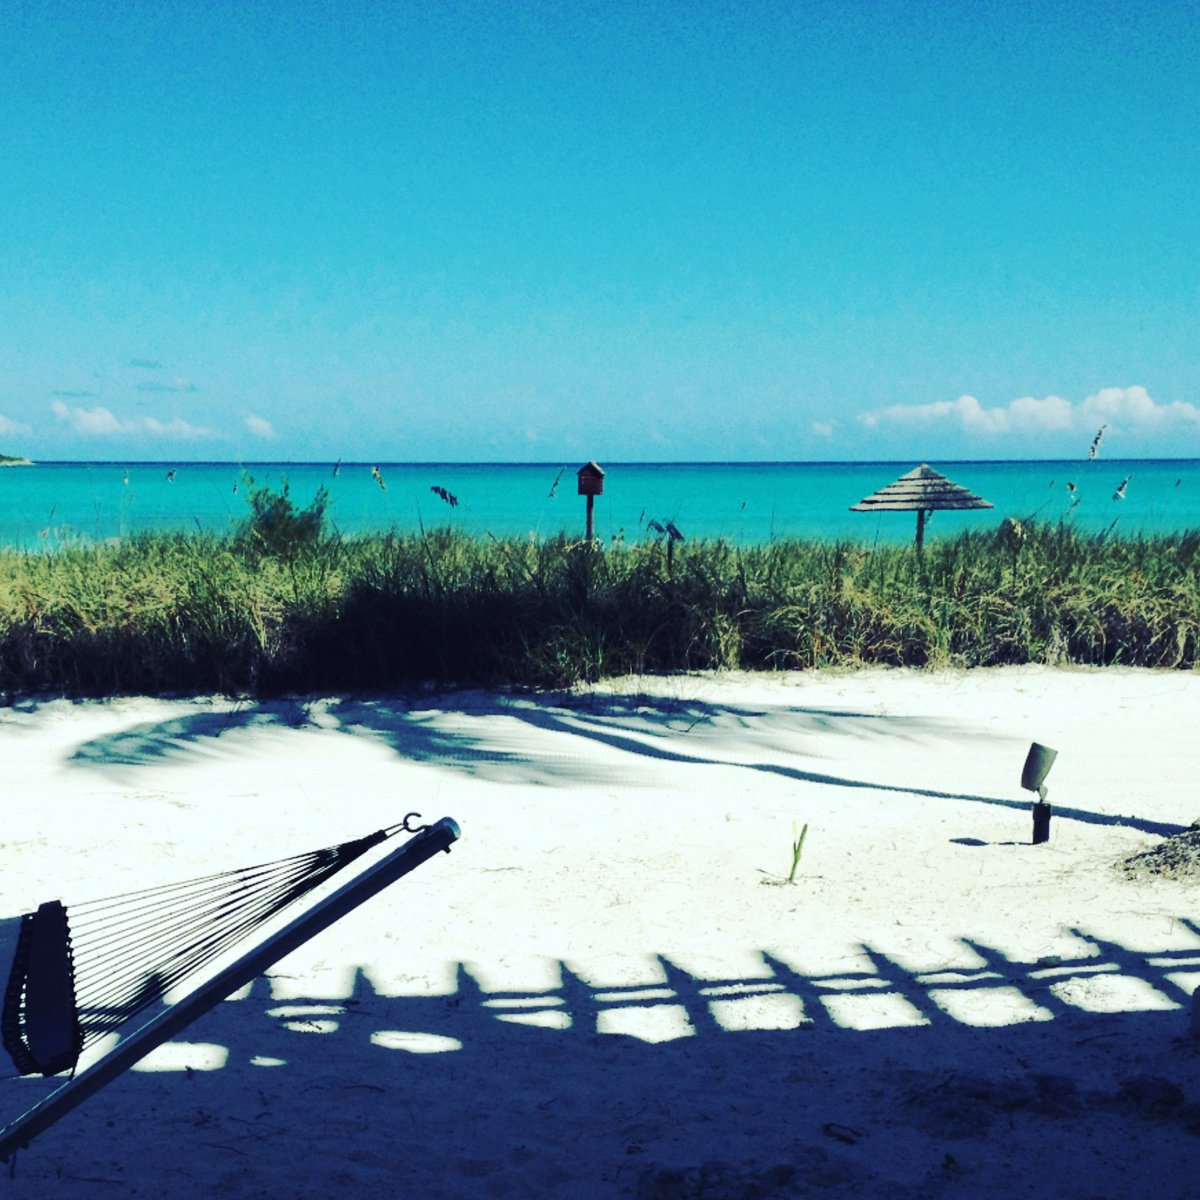 Beaches for days. Amidst all the chaos there is much in life to look forward to...  Strrel -- Products that go where you go...or on days like today...stay where you stay.  http://www.strrel.com #plasticfree #reusable #strrel #bahamas #roomwithaview #vsconature pic.twitter.com/u4GlYFaOTy